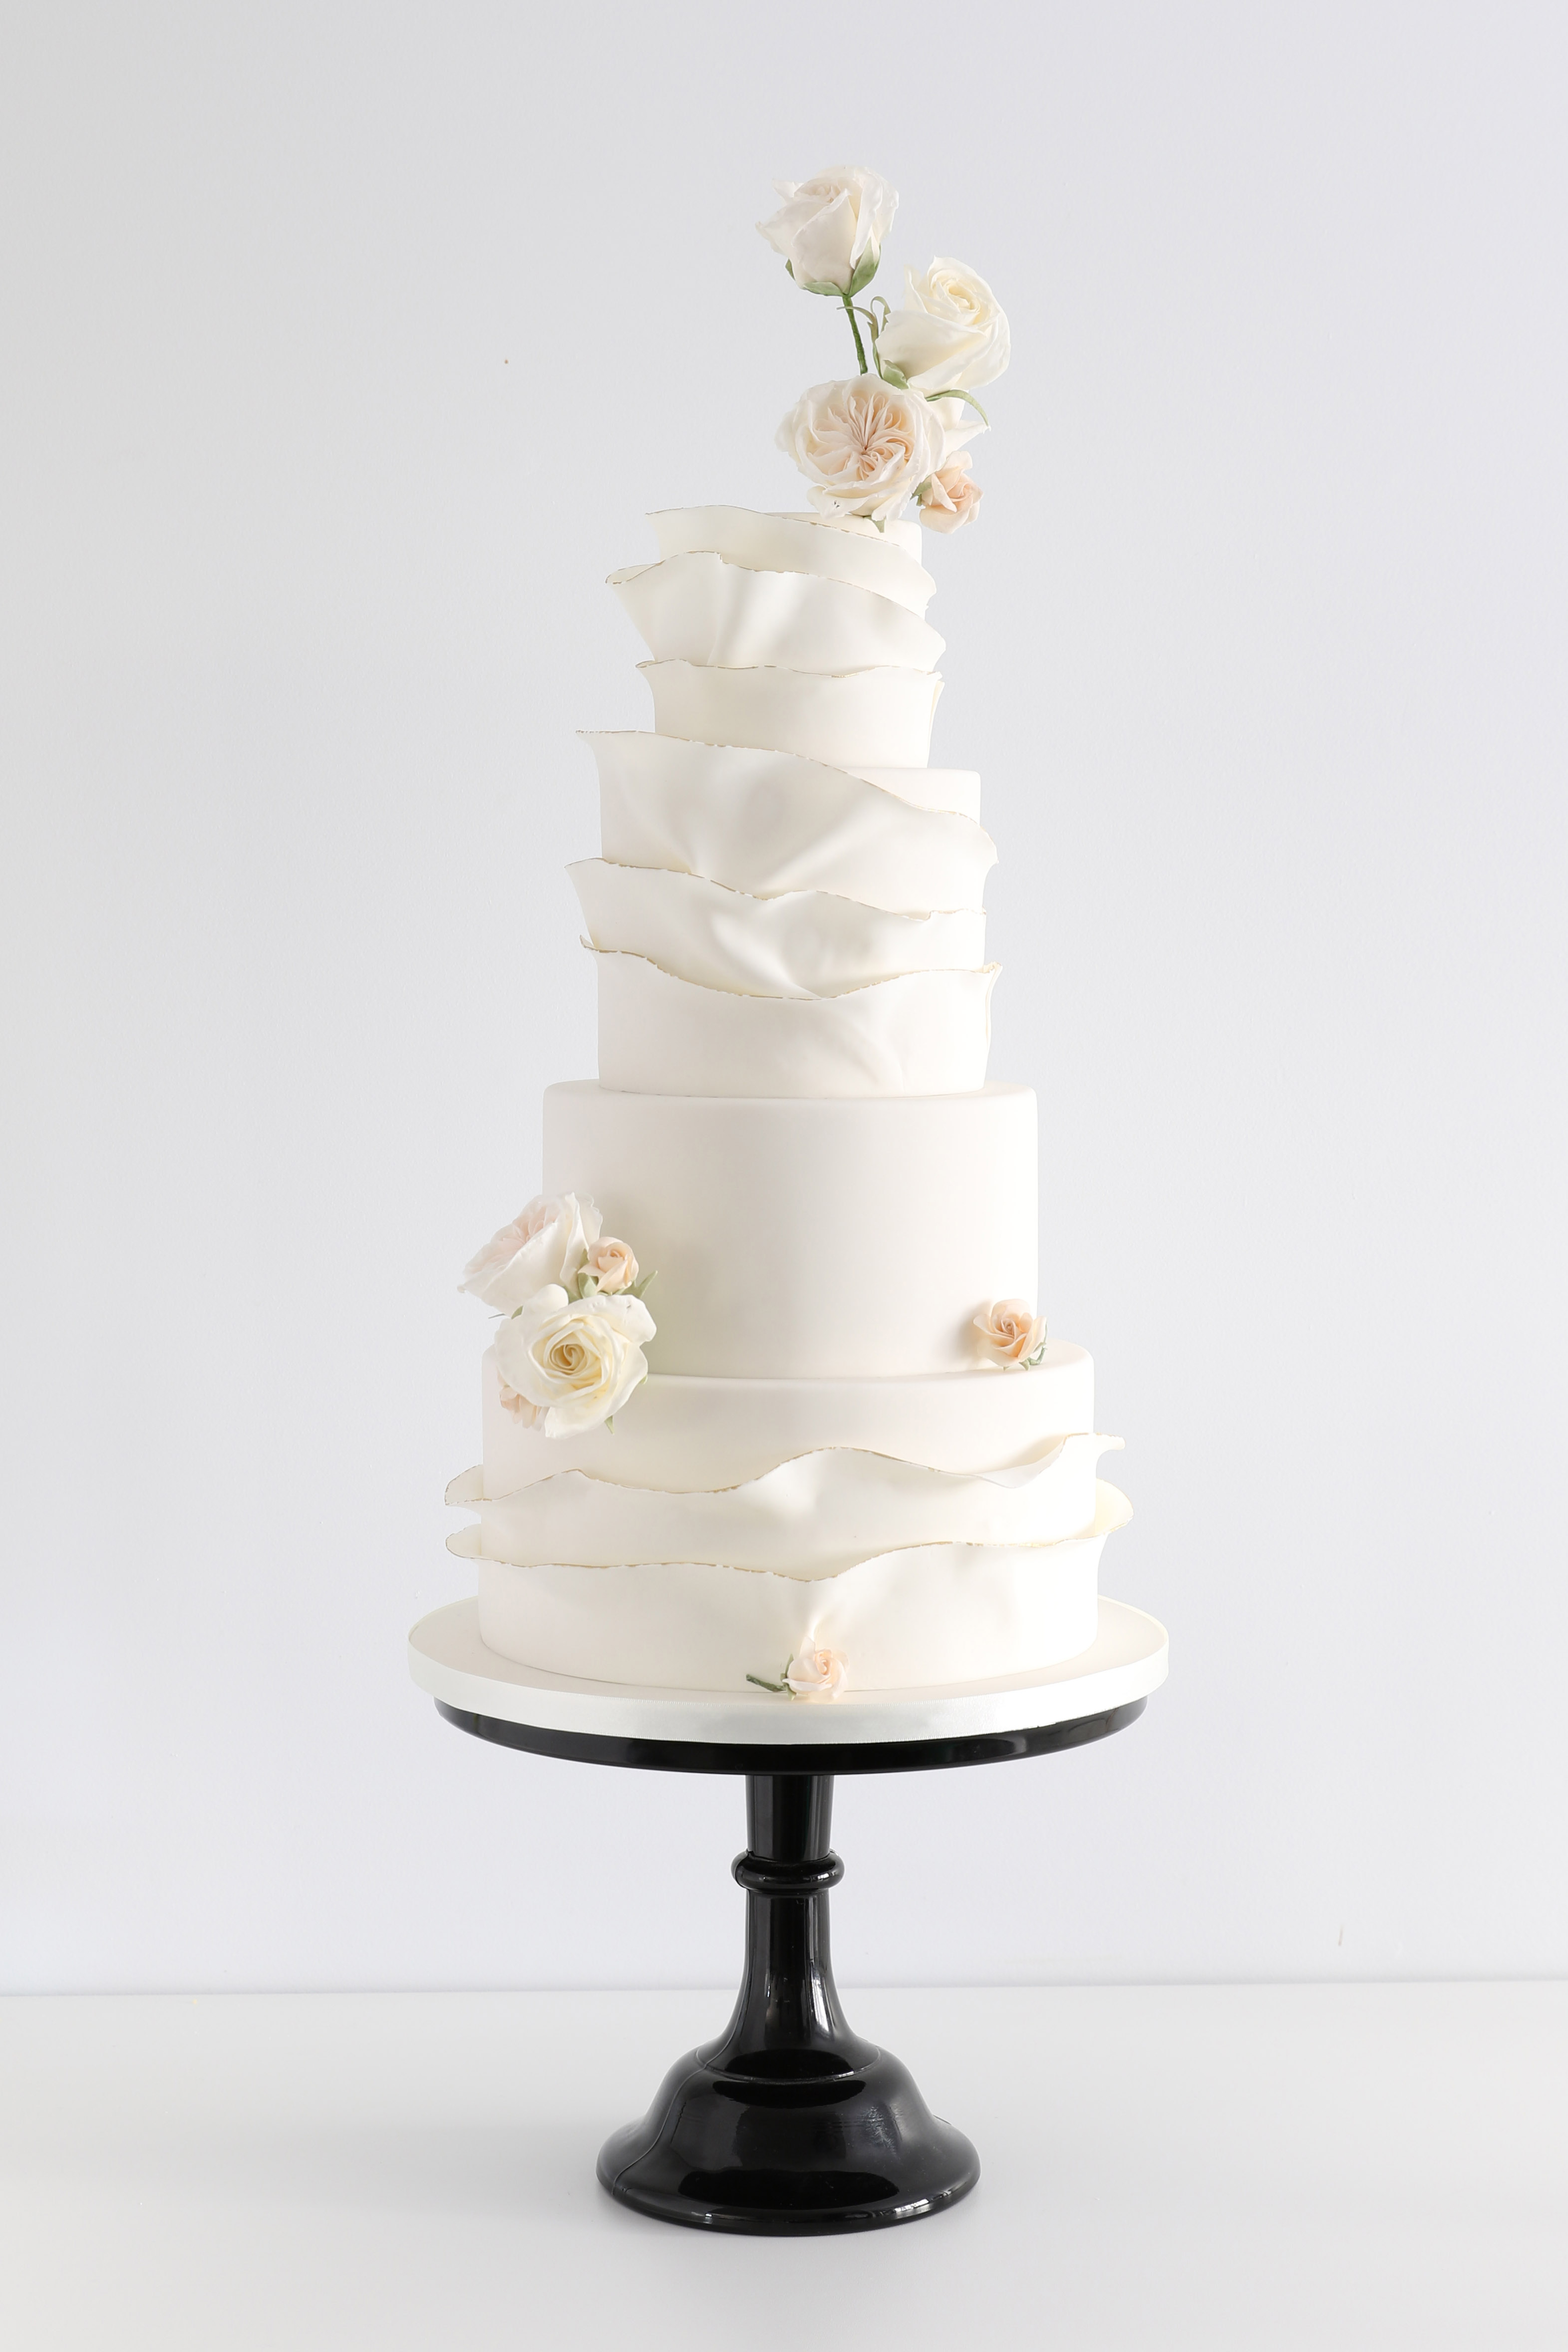 wedding cake makers central coast wedding cakes brisbane wedding cake coast amp gold 23126